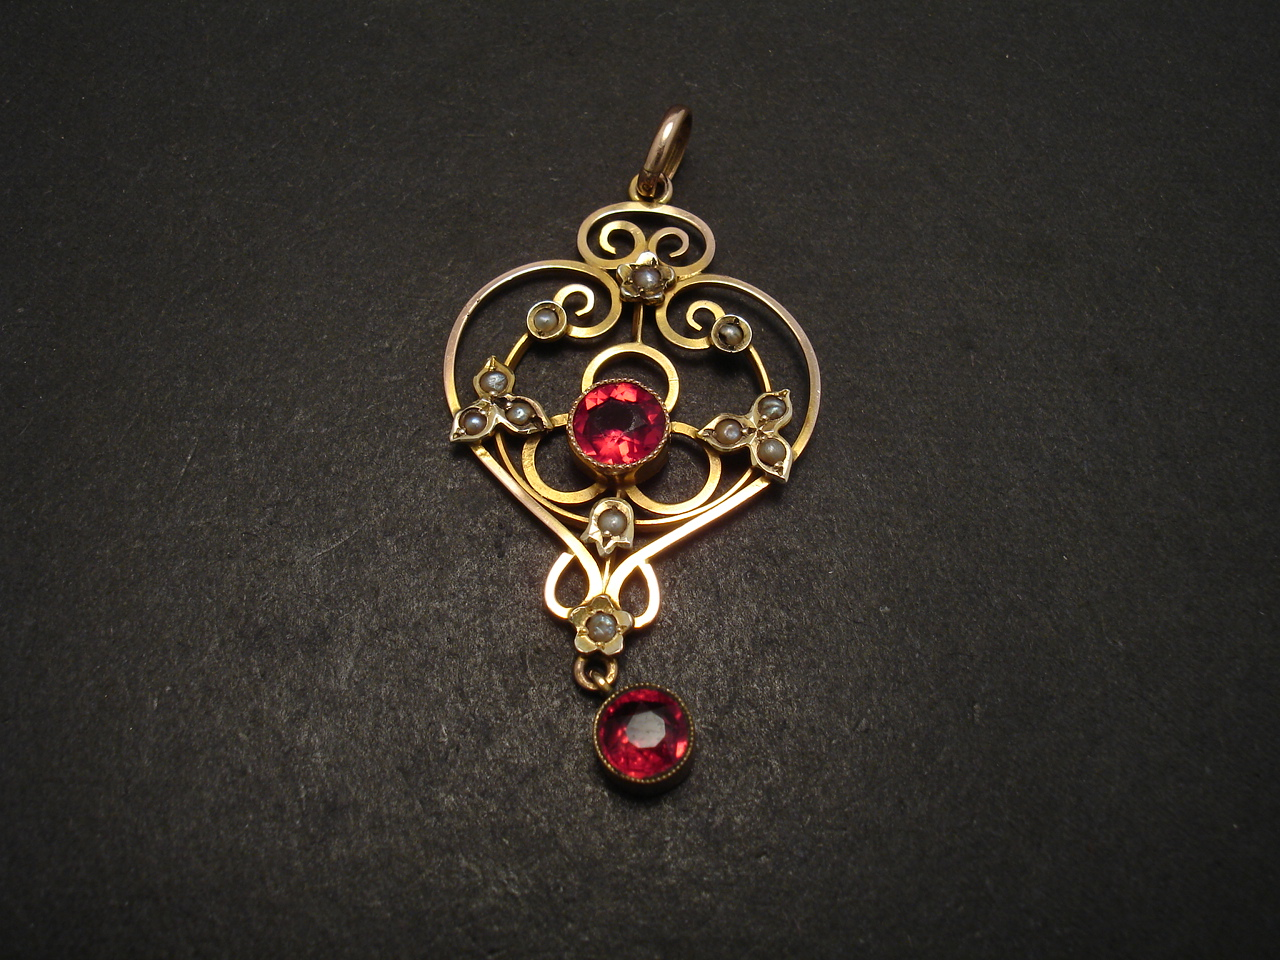 sydney necklace ruby pearl william antique glass jewellery gold pwearl christopher pendant